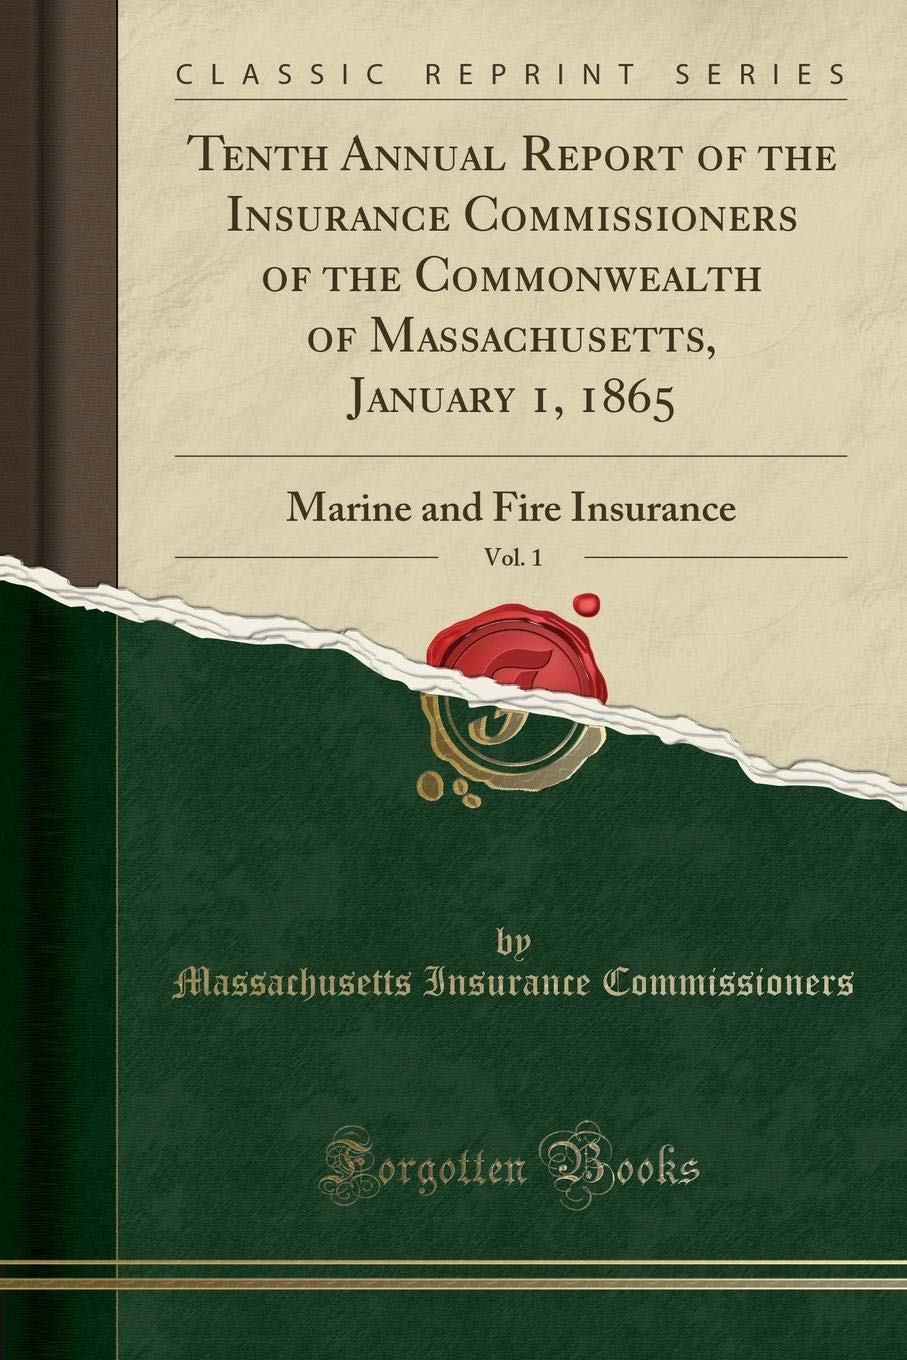 Download Tenth Annual Report of the Insurance Commissioners of the Commonwealth of Massachusetts, January 1, 1865, Vol. 1: Marine and Fire Insurance (Classic Reprint) ebook